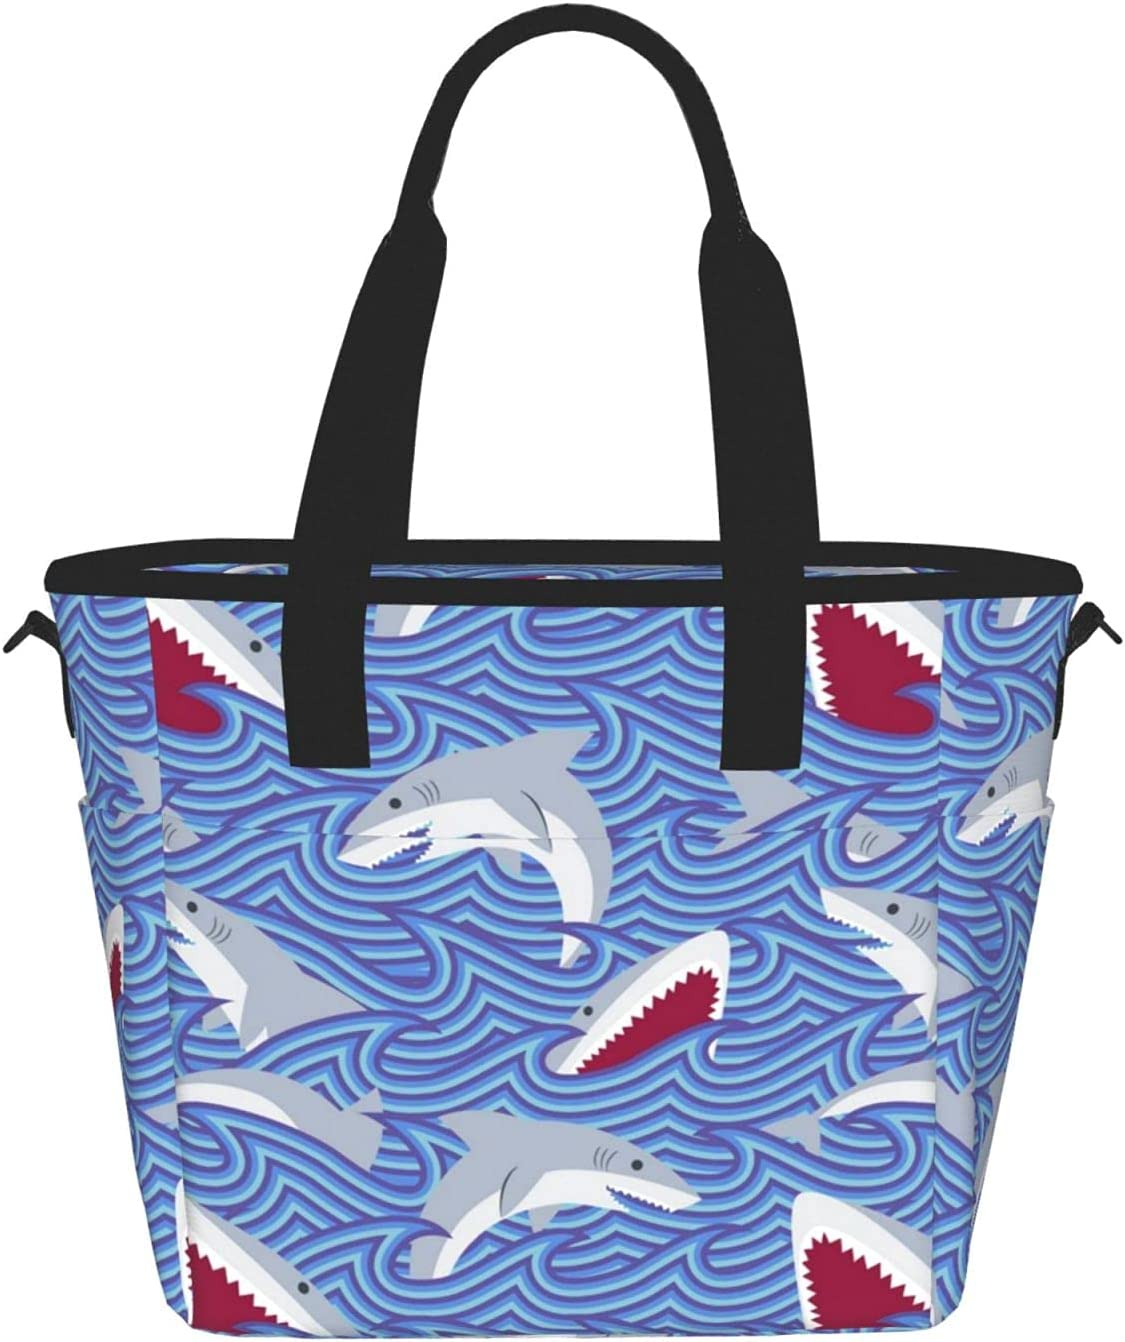 Challenge the lowest price Foraging Fishprinting Women'S Lunch Bag Ba Portable Max 84% OFF Fashion Meal